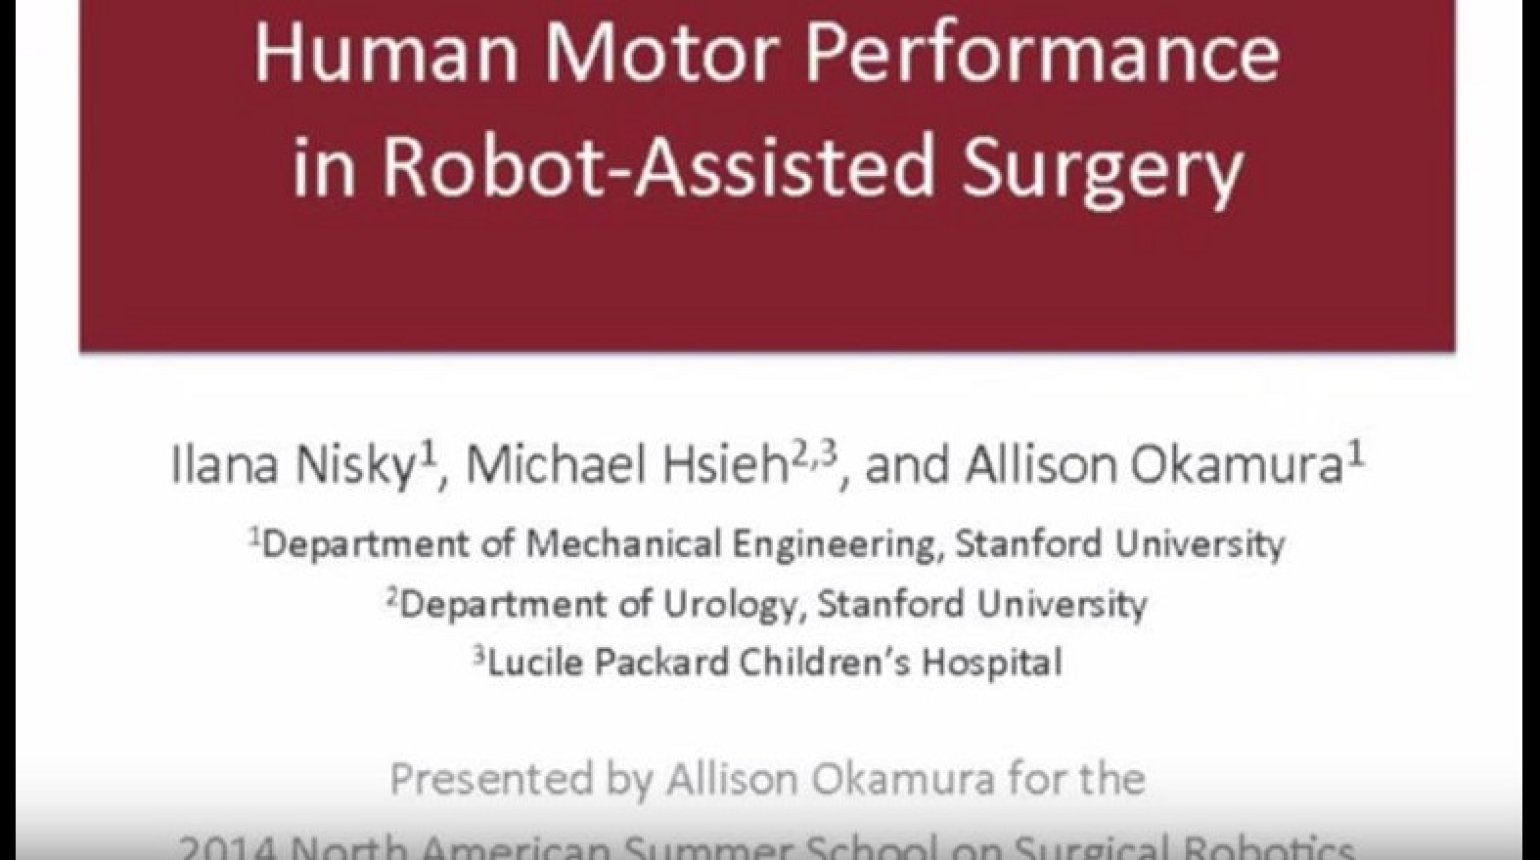 Human-motor performance in robot assisted surgery